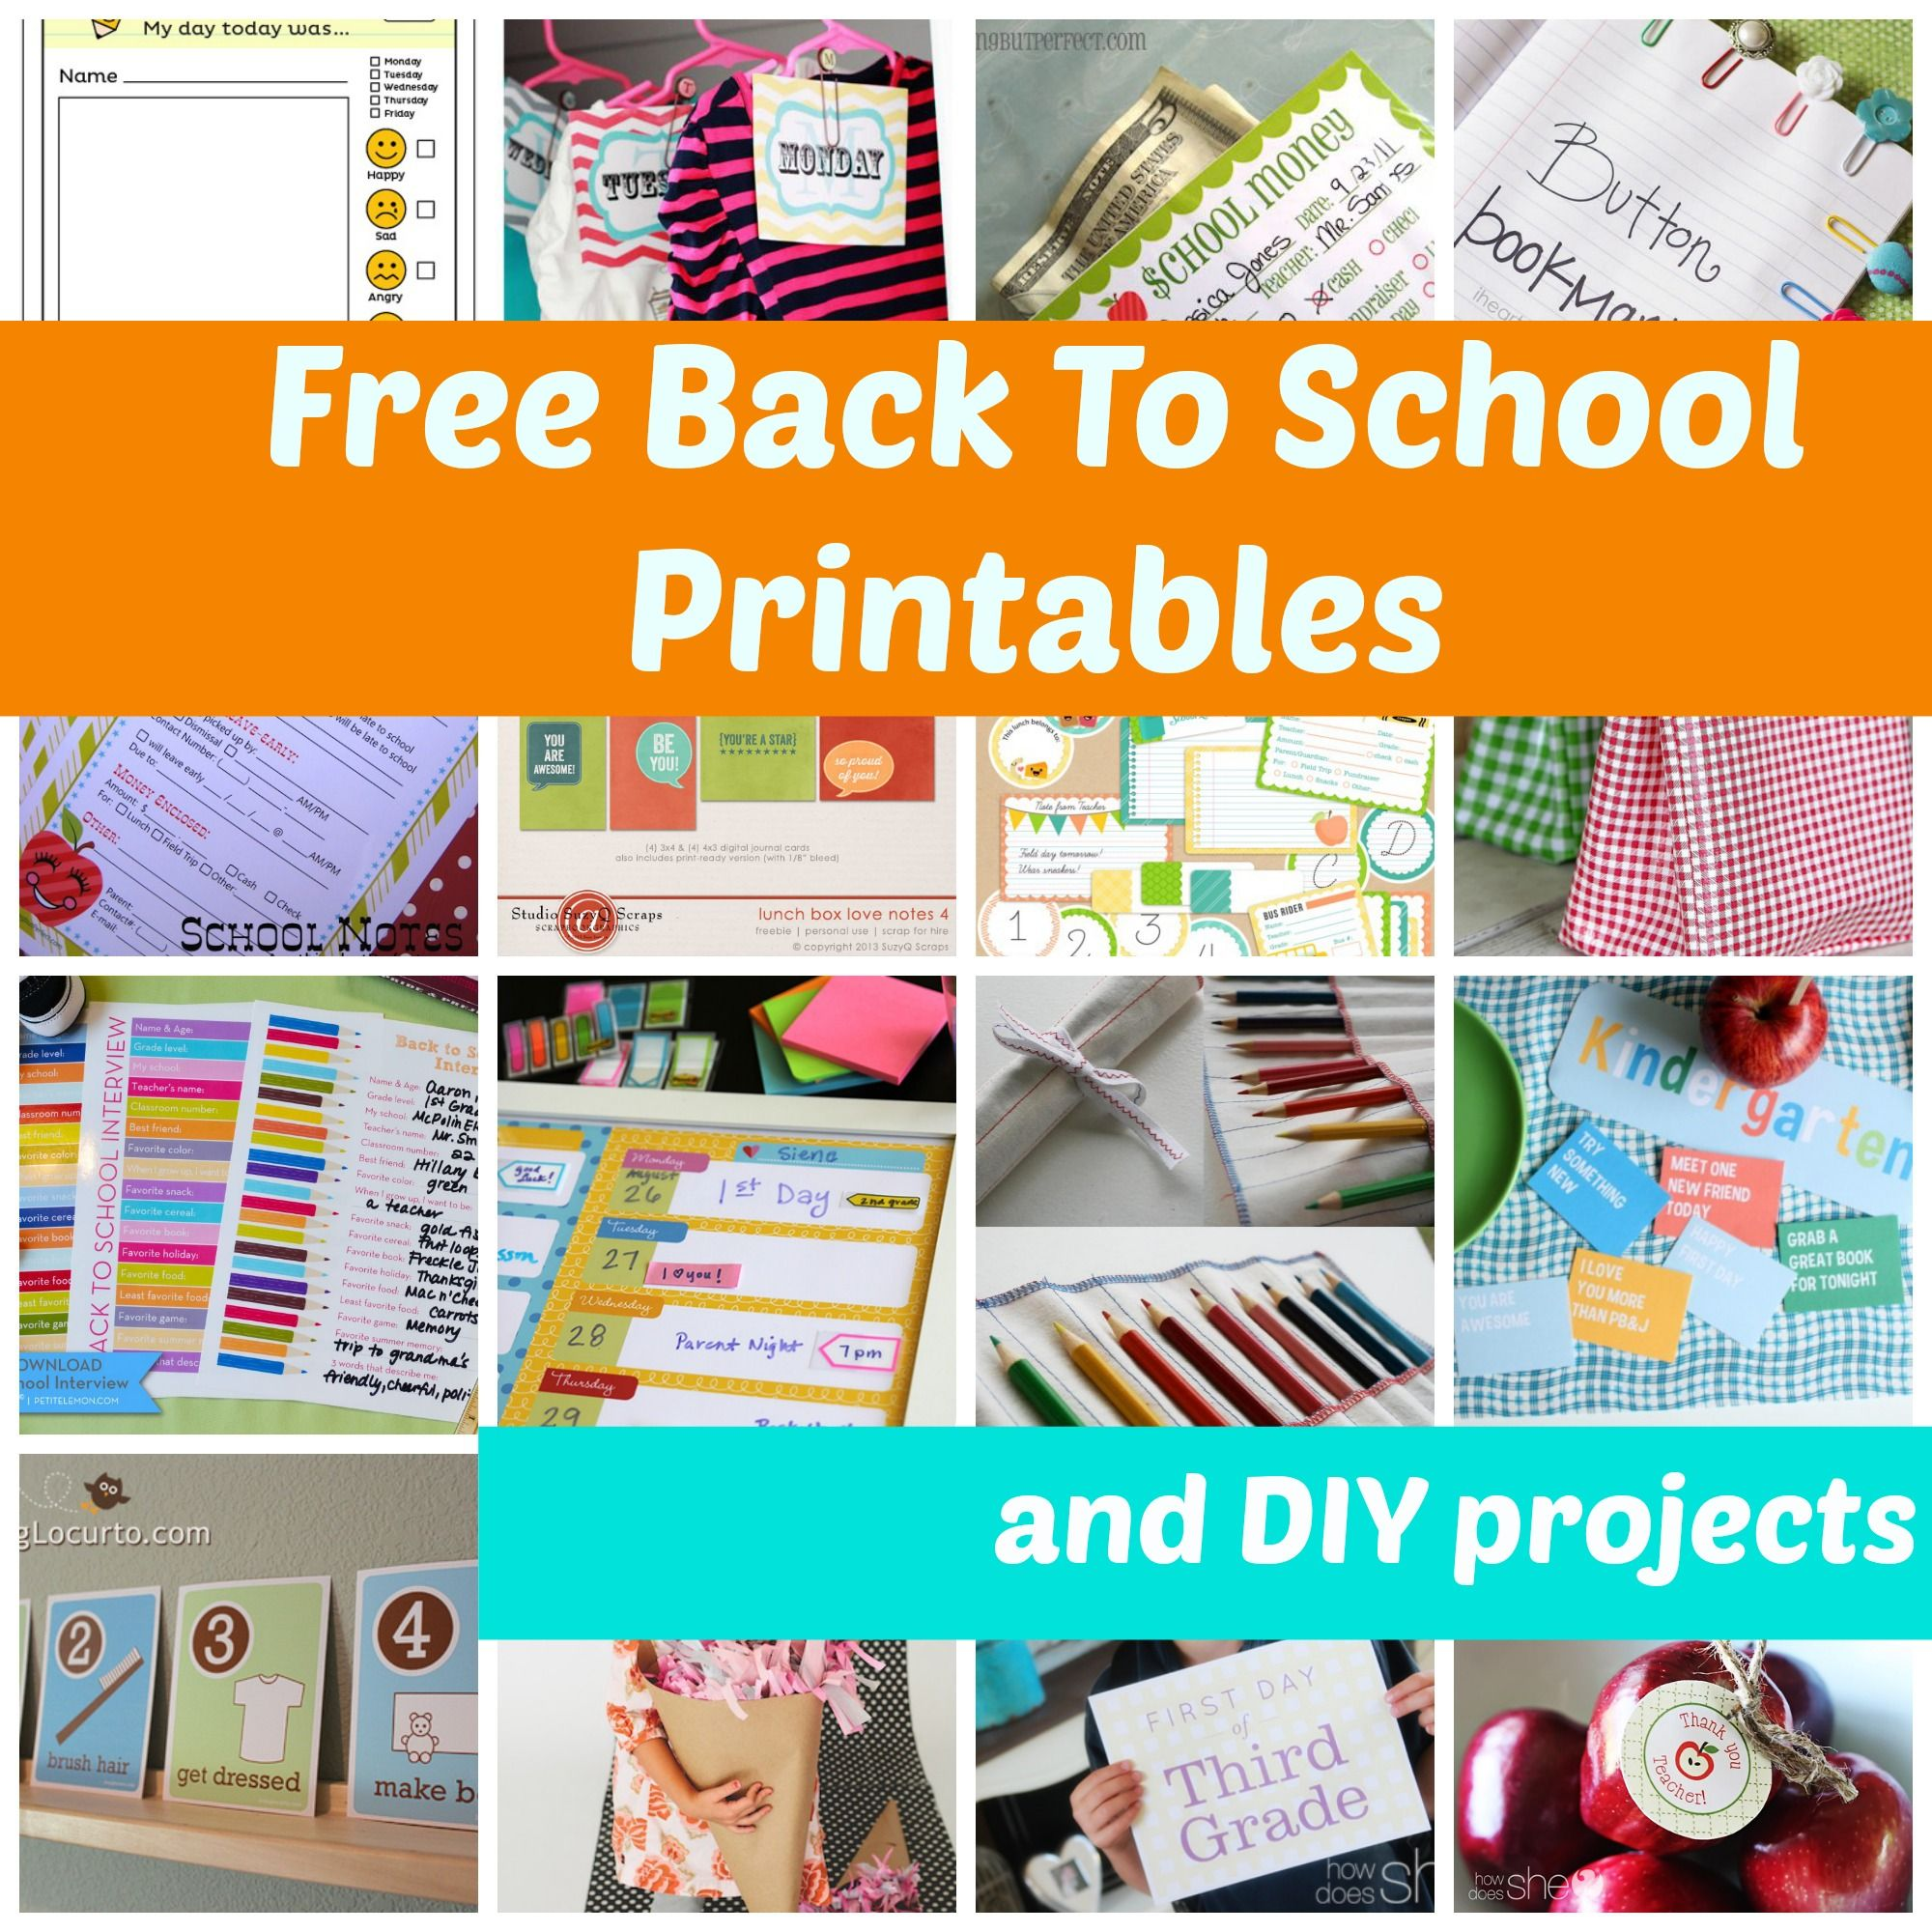 Free Back To School Ideas To Make Their First Day Special Printables And Diy Projects